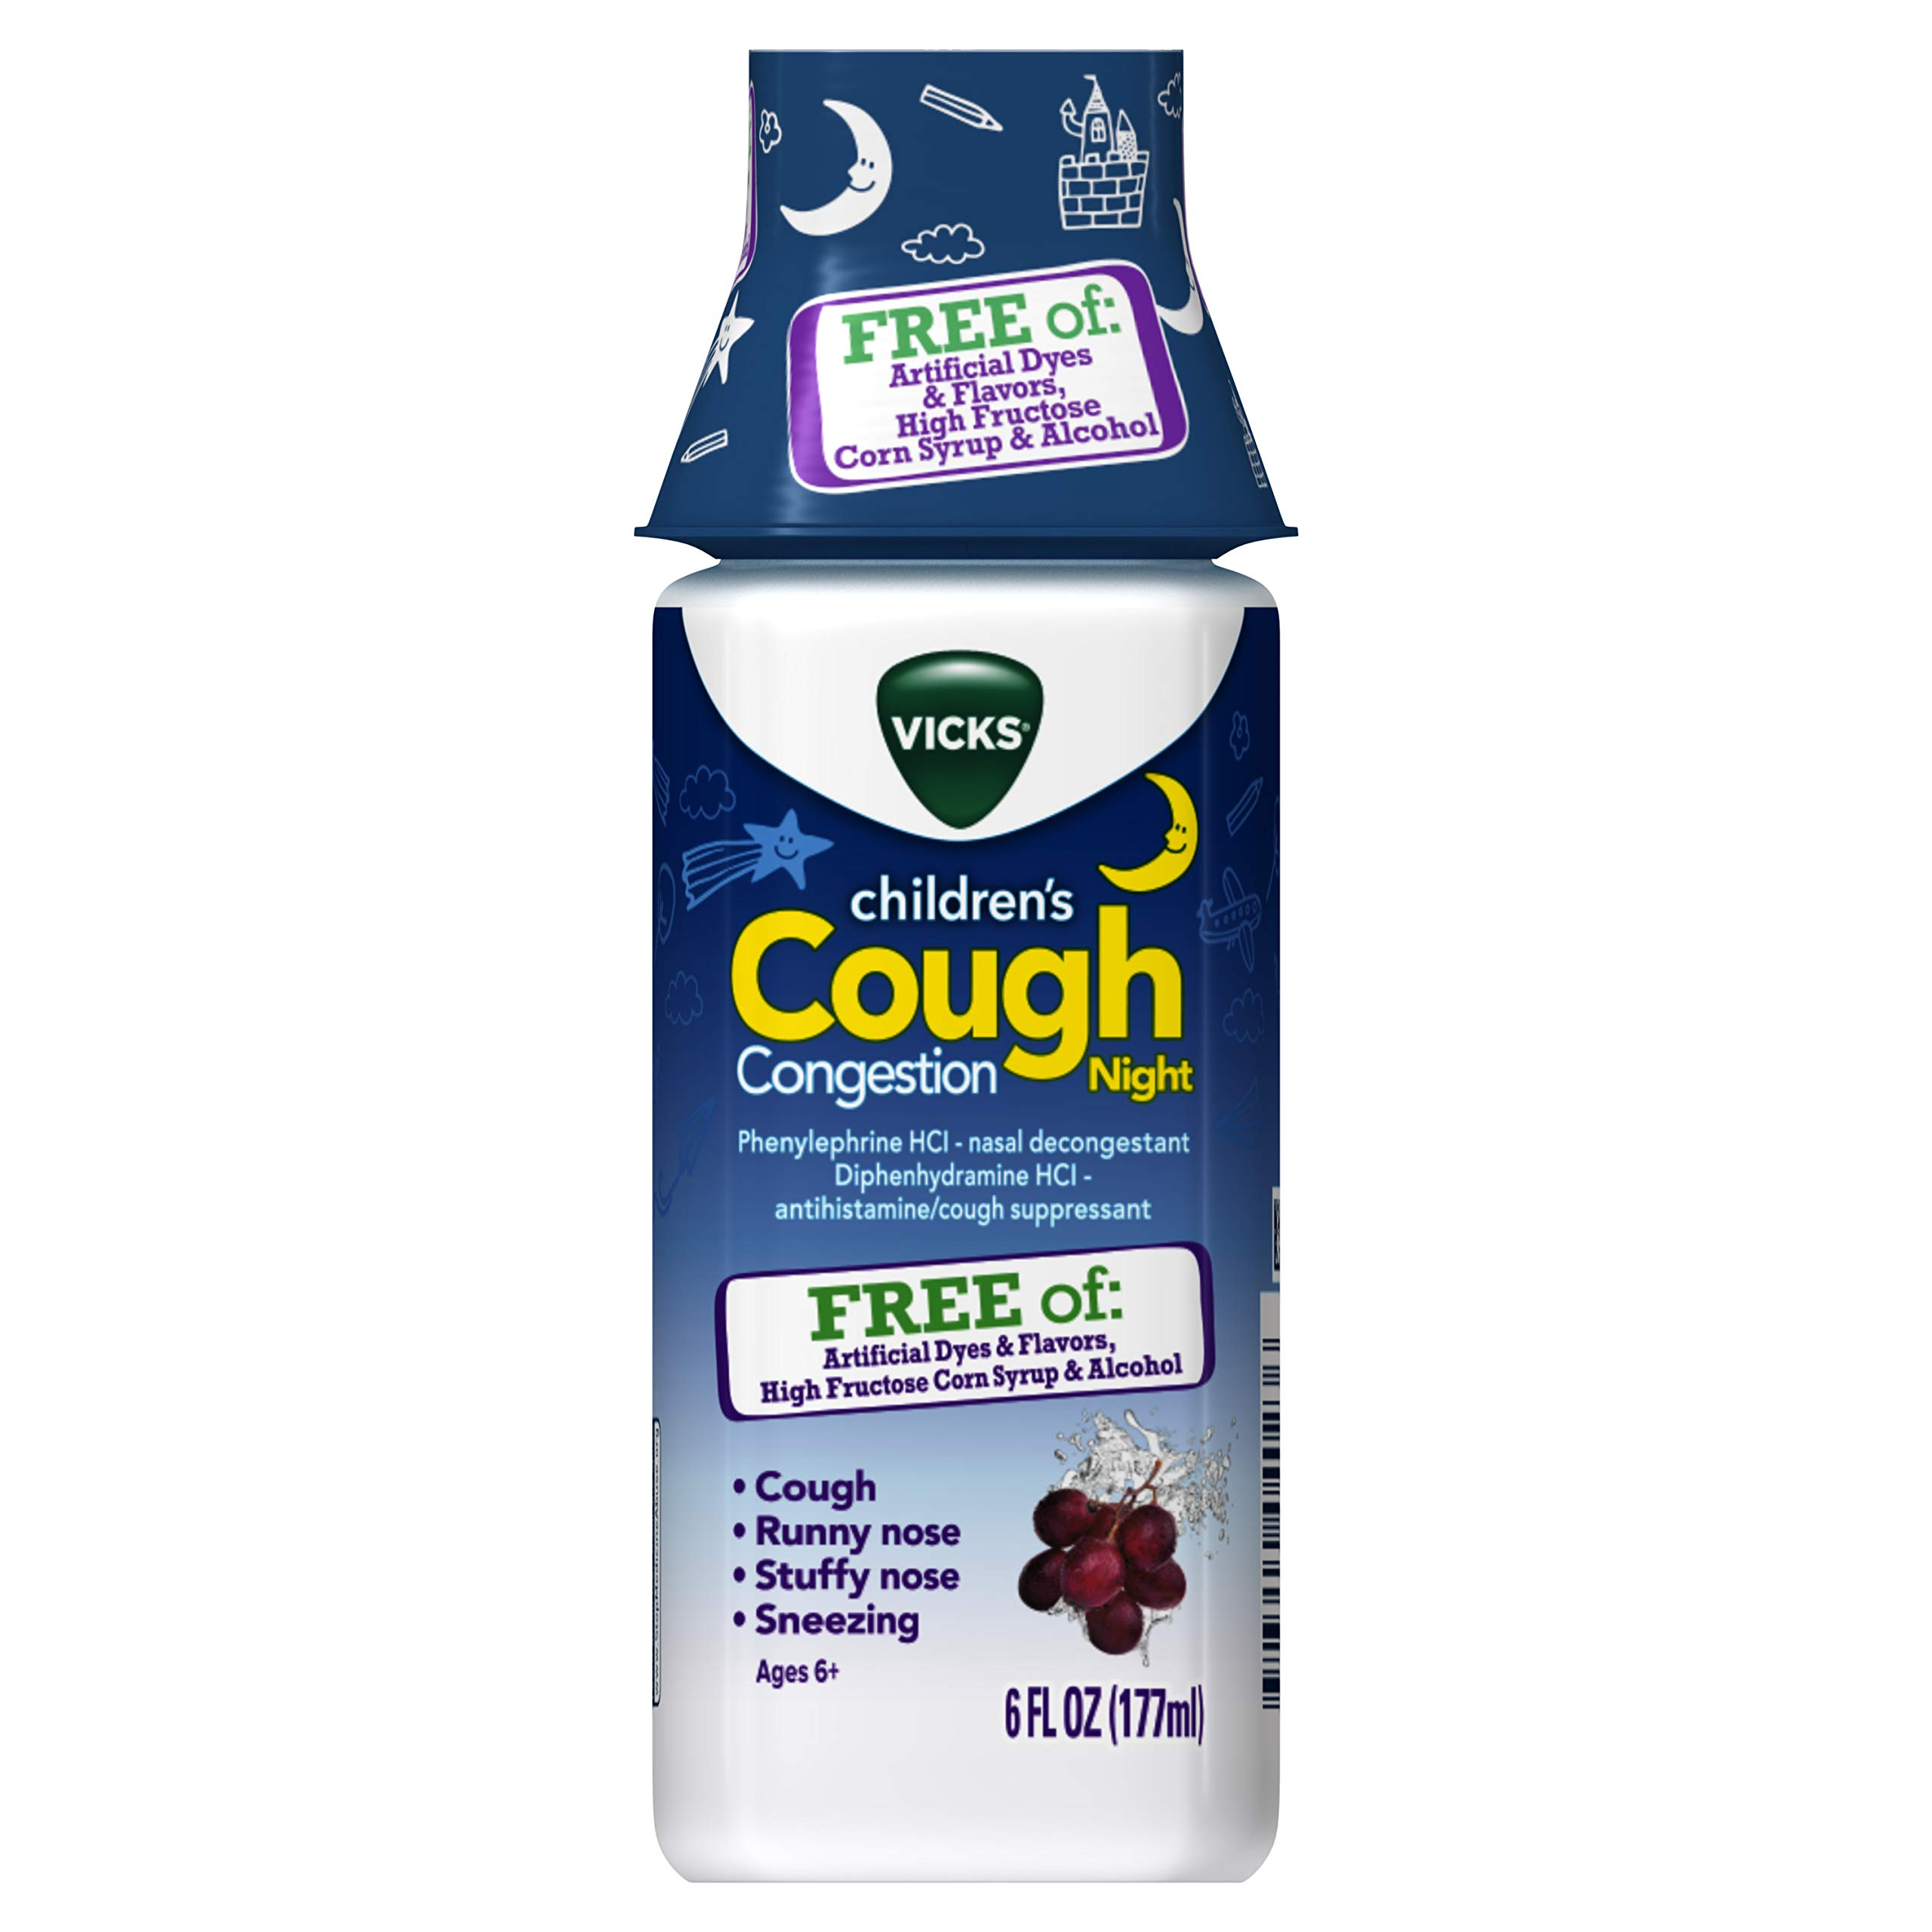 Vicks Children's, Night Cough & Congestion Relief, Free of Artificial Dyes & Flavors, Nighttime Berry Flavor, 6 FL OZ